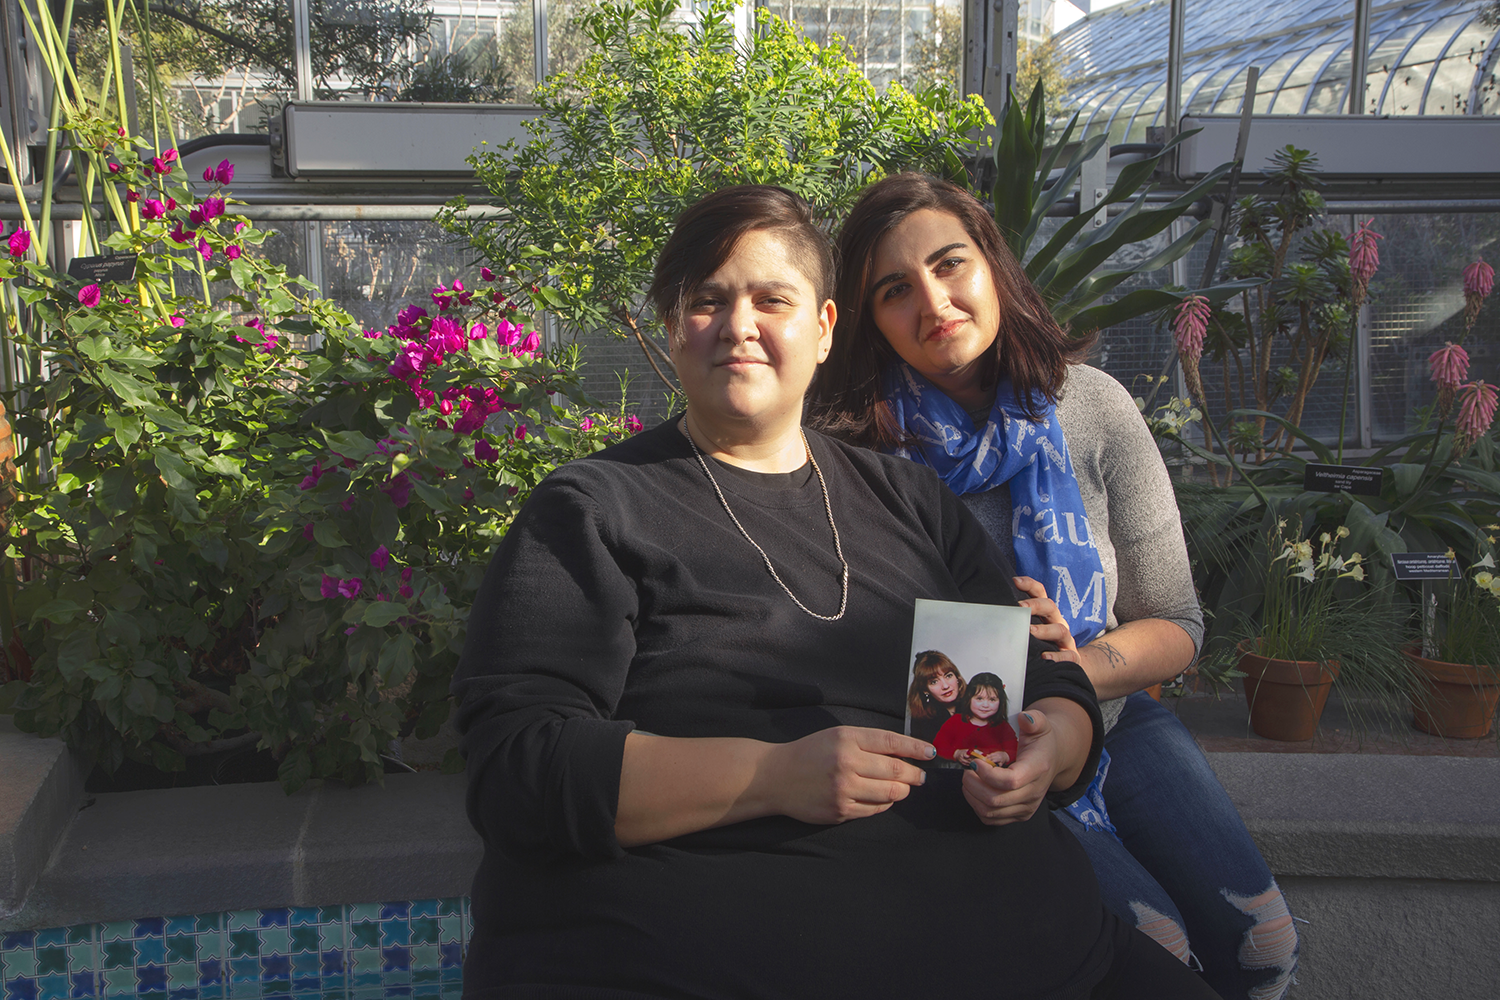 Nahuel Aránguiz poses with their friend Kat Greene and a picture of them and their mom at the United States Botanical Garden on January 28th, 2019.  Segunda Familia  is a 3-portrait project that demonstrates Queer people with their chosen family. As queer people, our families aren't always supportive of us, so we search for family figures in our communities.